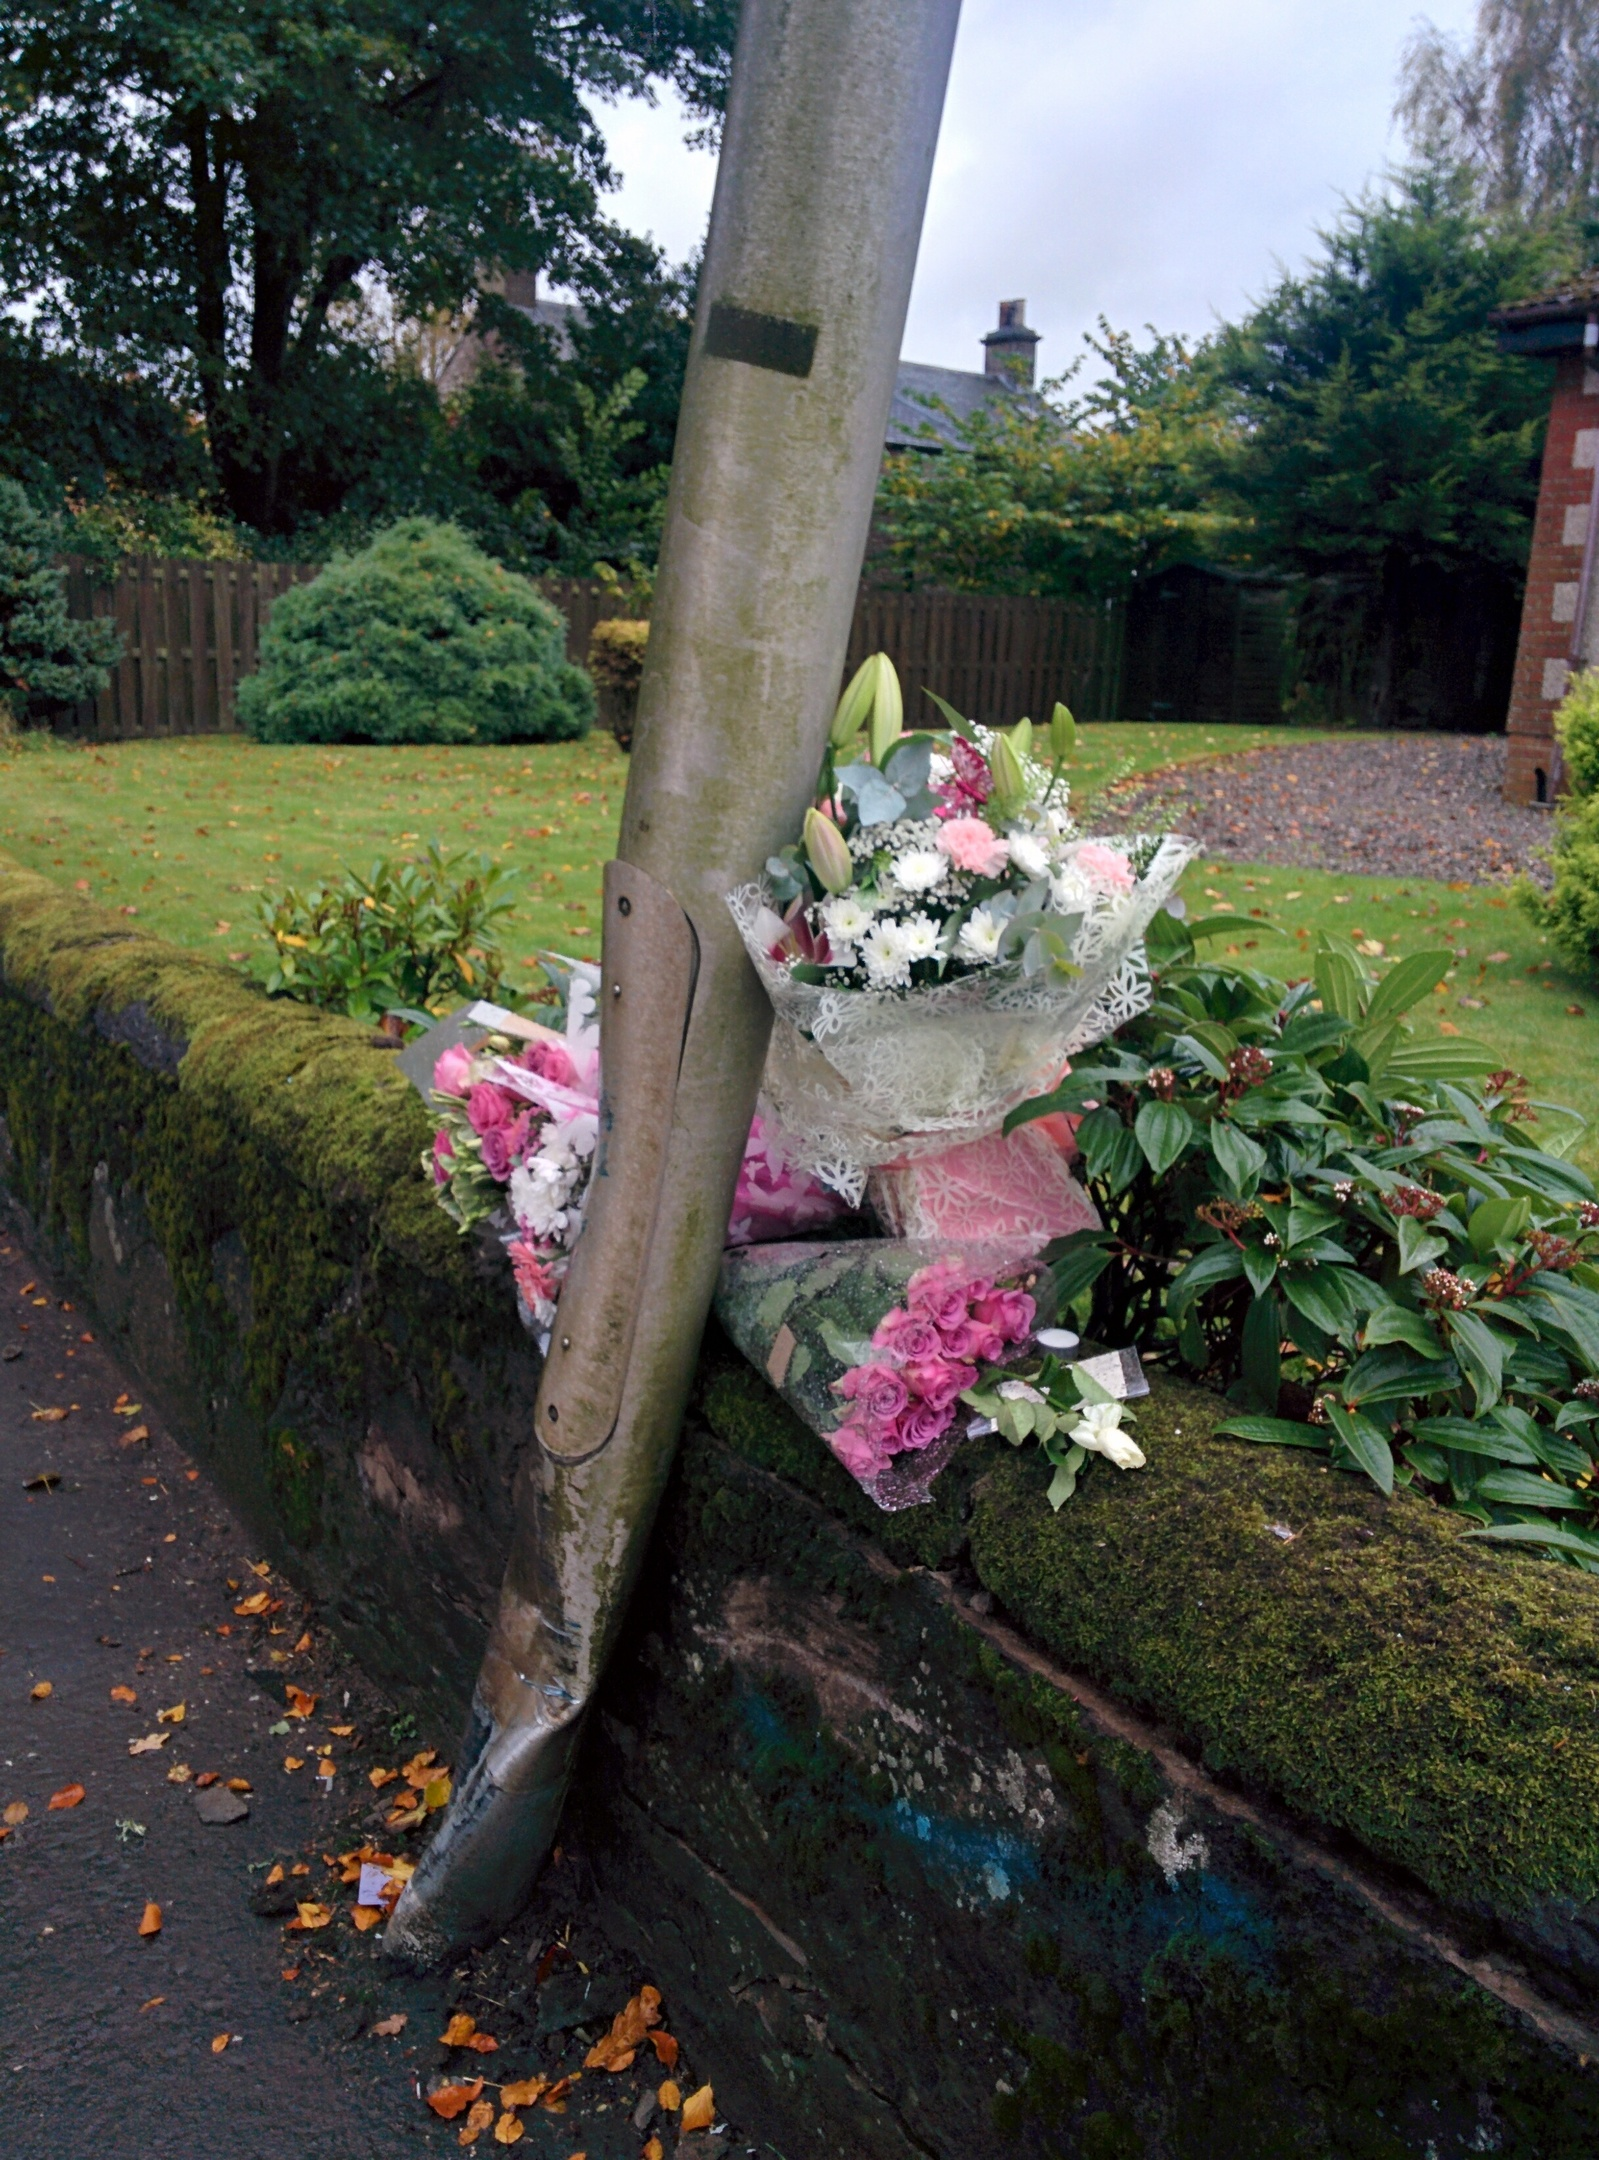 The floral tributes left beside a lampost at the scene of the fatal accident.